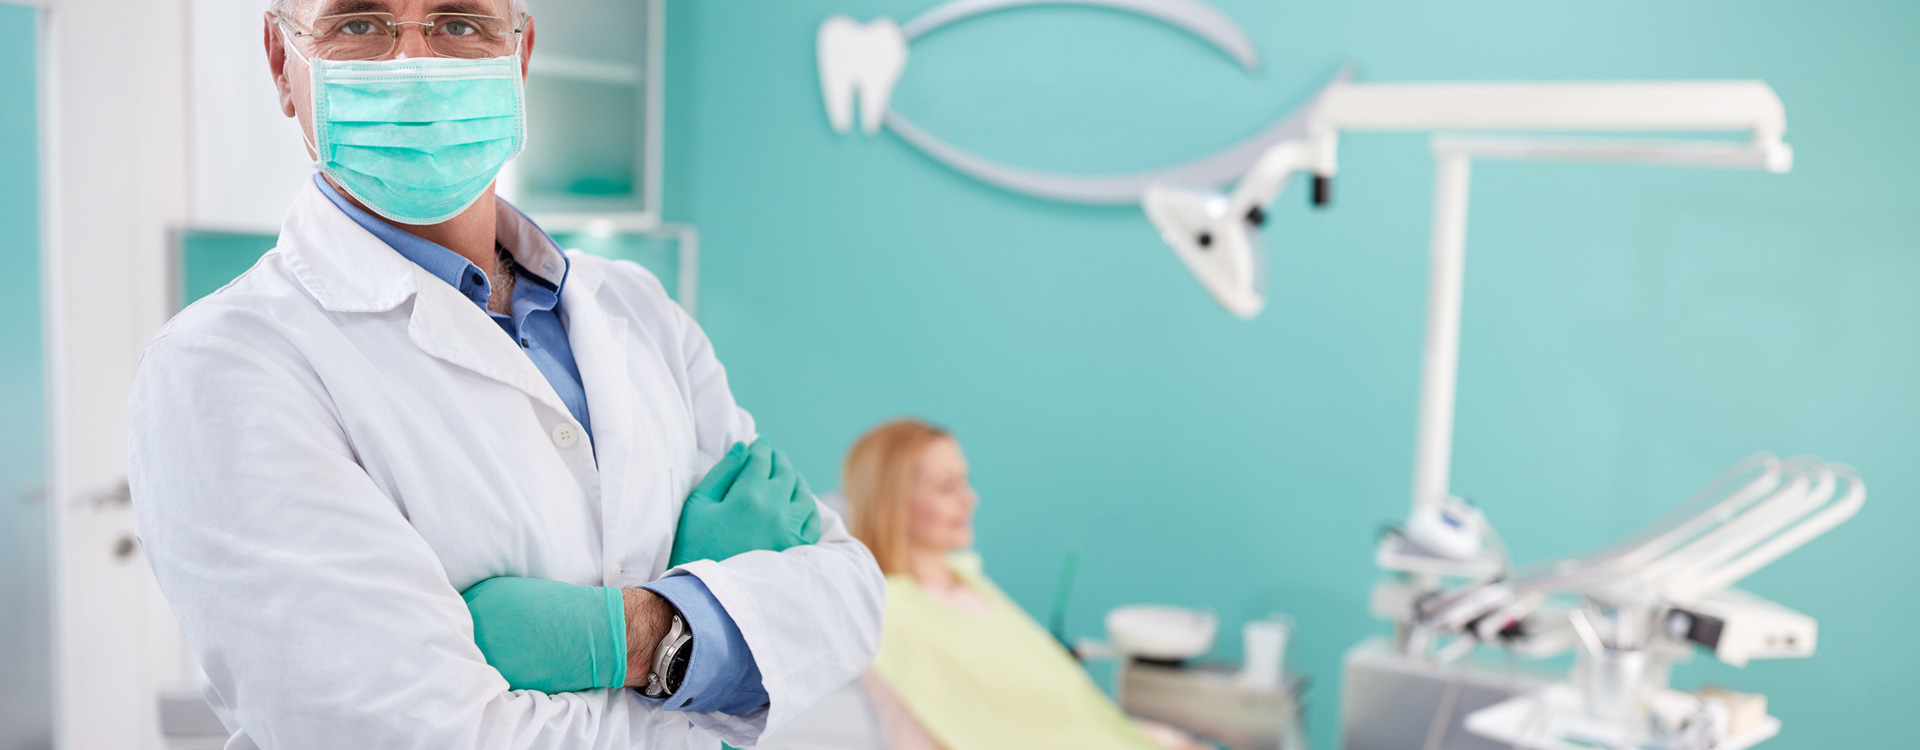 Doctor focusing to camera at dental office with a patient in background